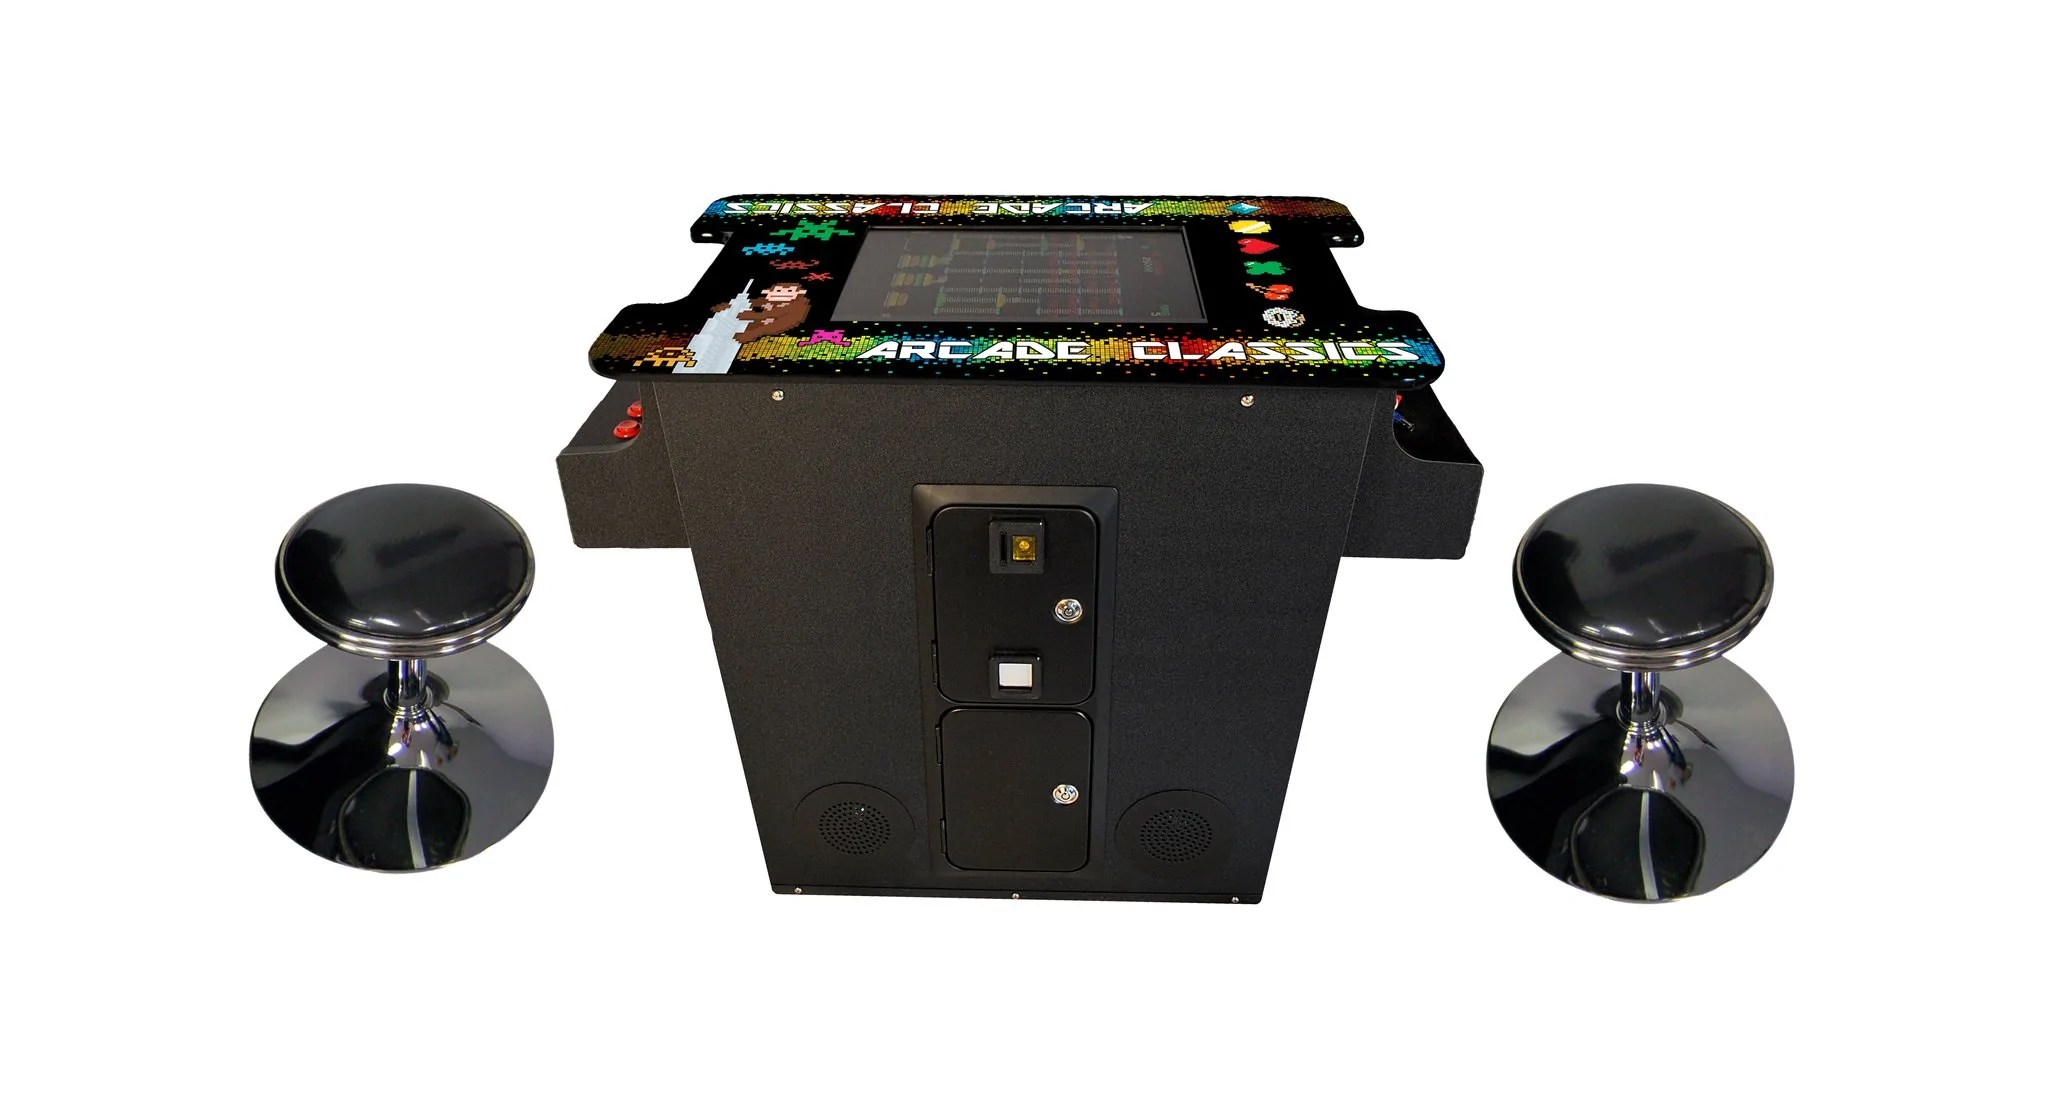 Classic Table Arcade Games Full Sized Cocktail Table Arcade With 60 Classic Games